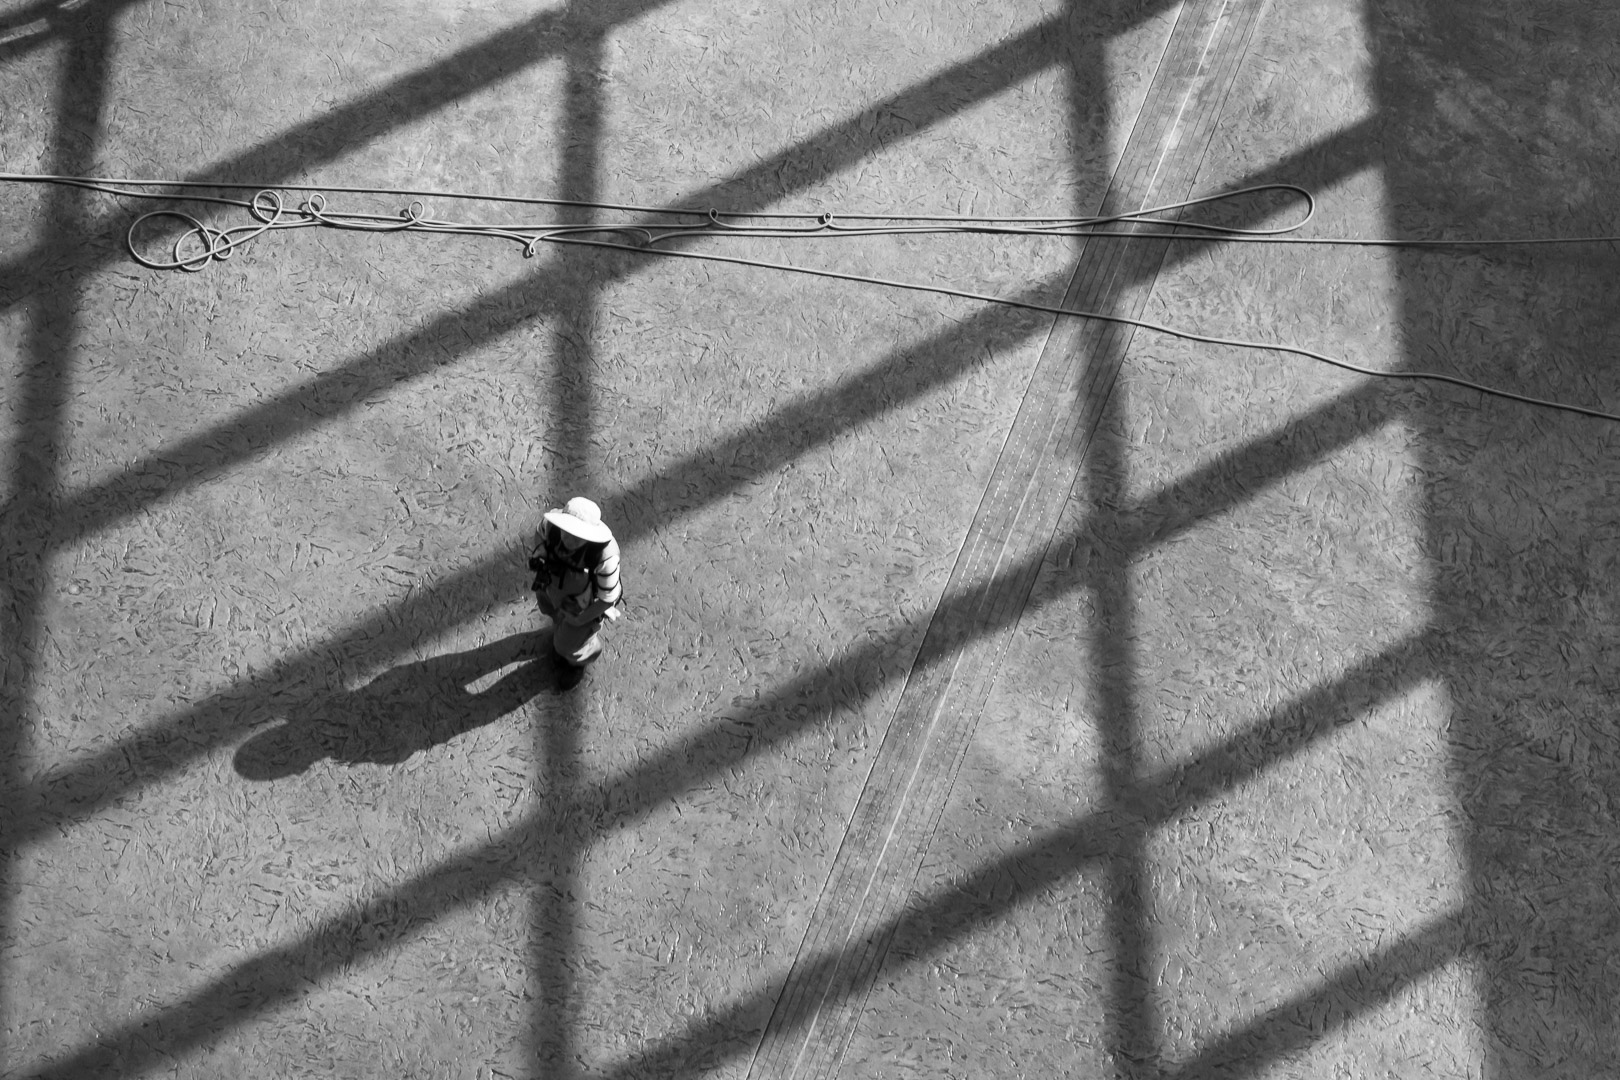 lost in lines